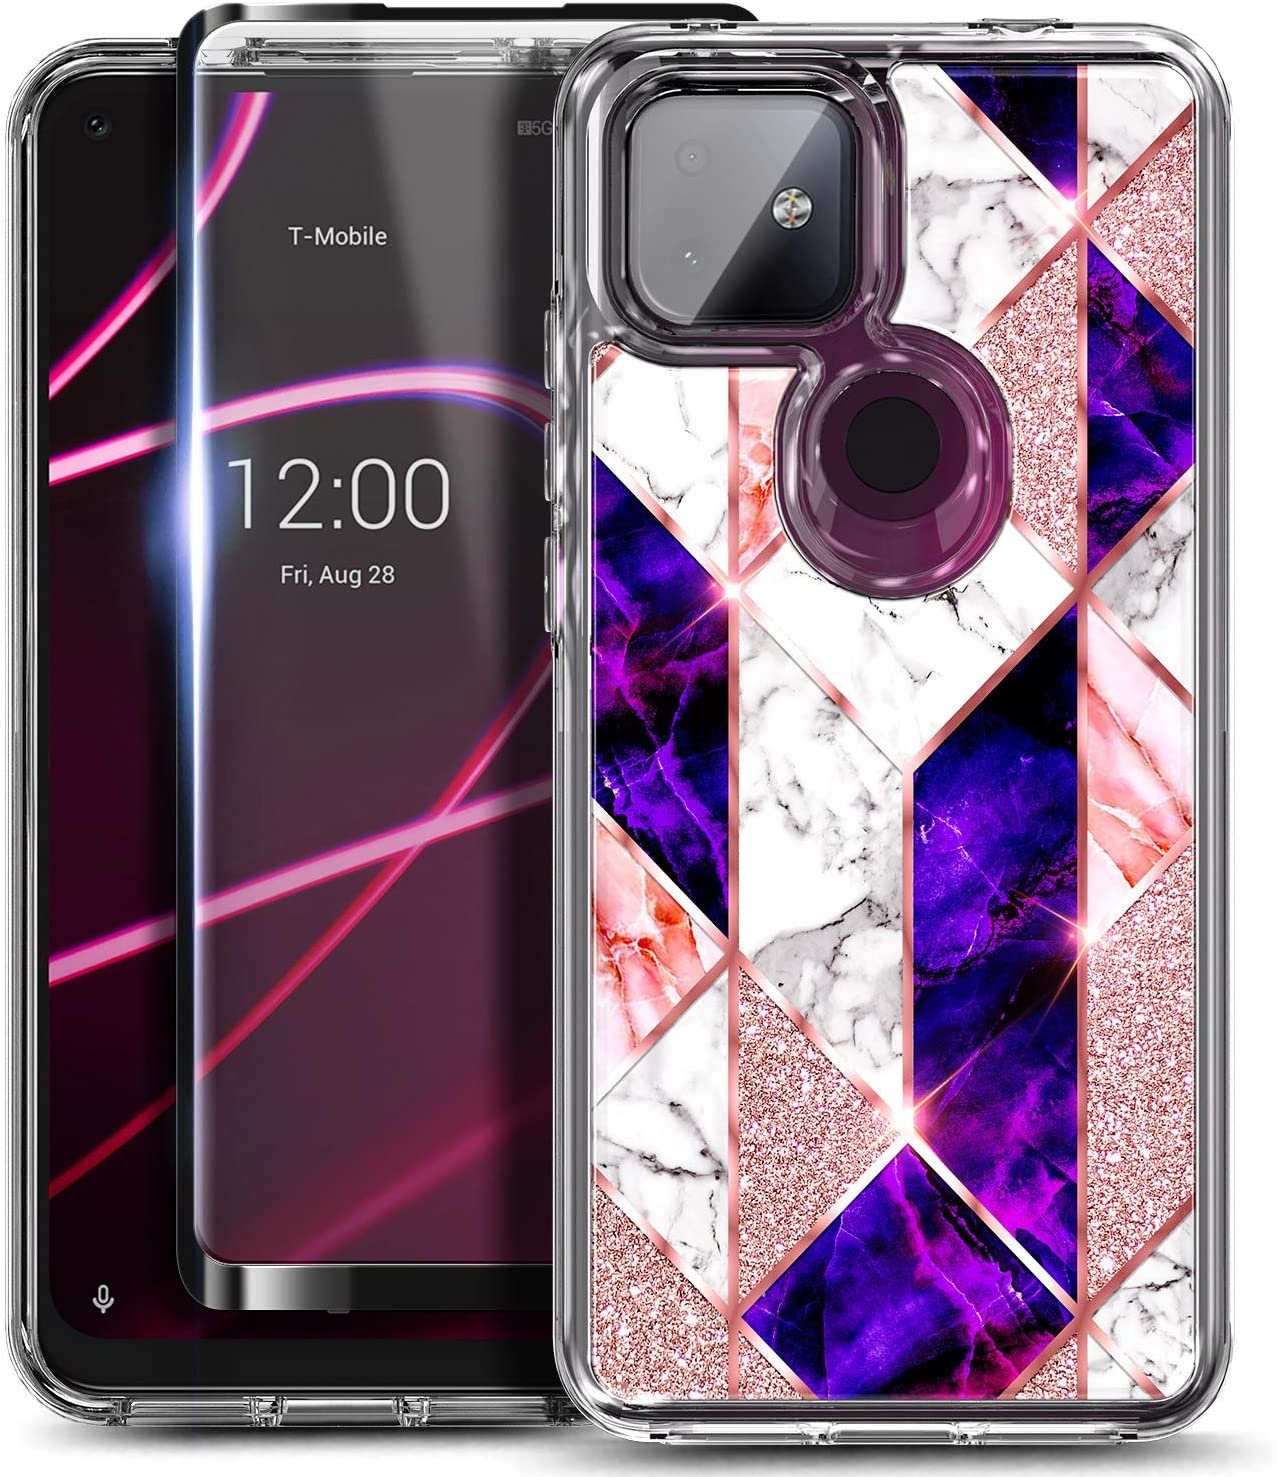 NZND Case for T-Mobile REVVL 4+ Plus with Tempered Glass Screen Protector (Full Coverage), Glossy Stylish Finish, Shockproof Protective Hybrid Bumper Case -Marble Series Rose Gold